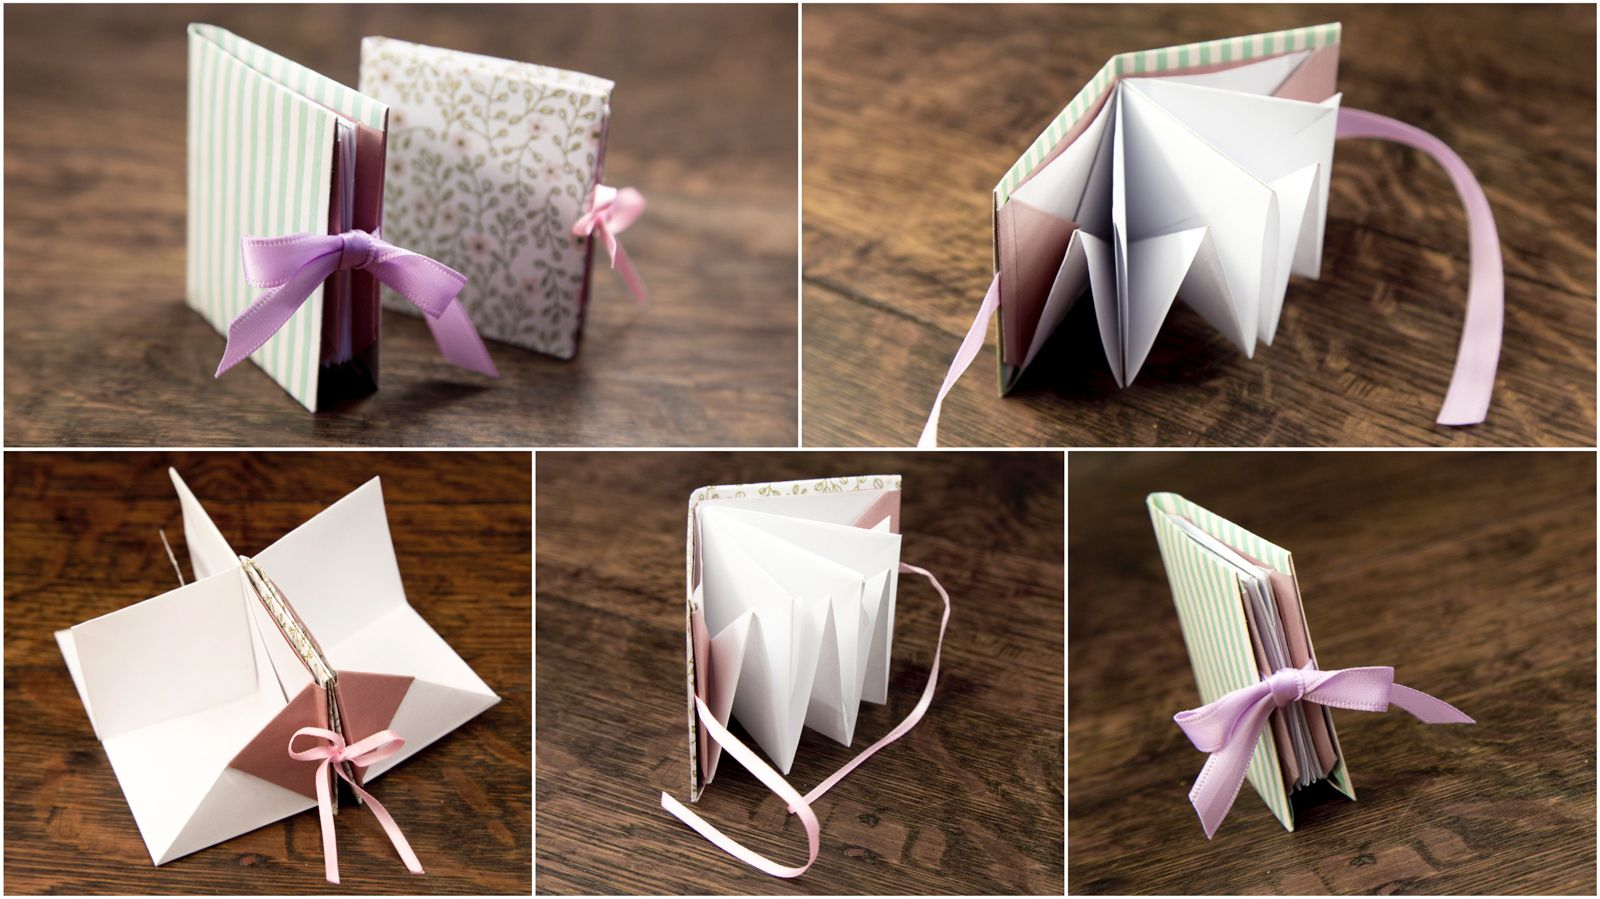 Origami popup book video tutorial oragami origami and popup origami popup book video tutorial learn how to make an origami pop up book jeuxipadfo Image collections